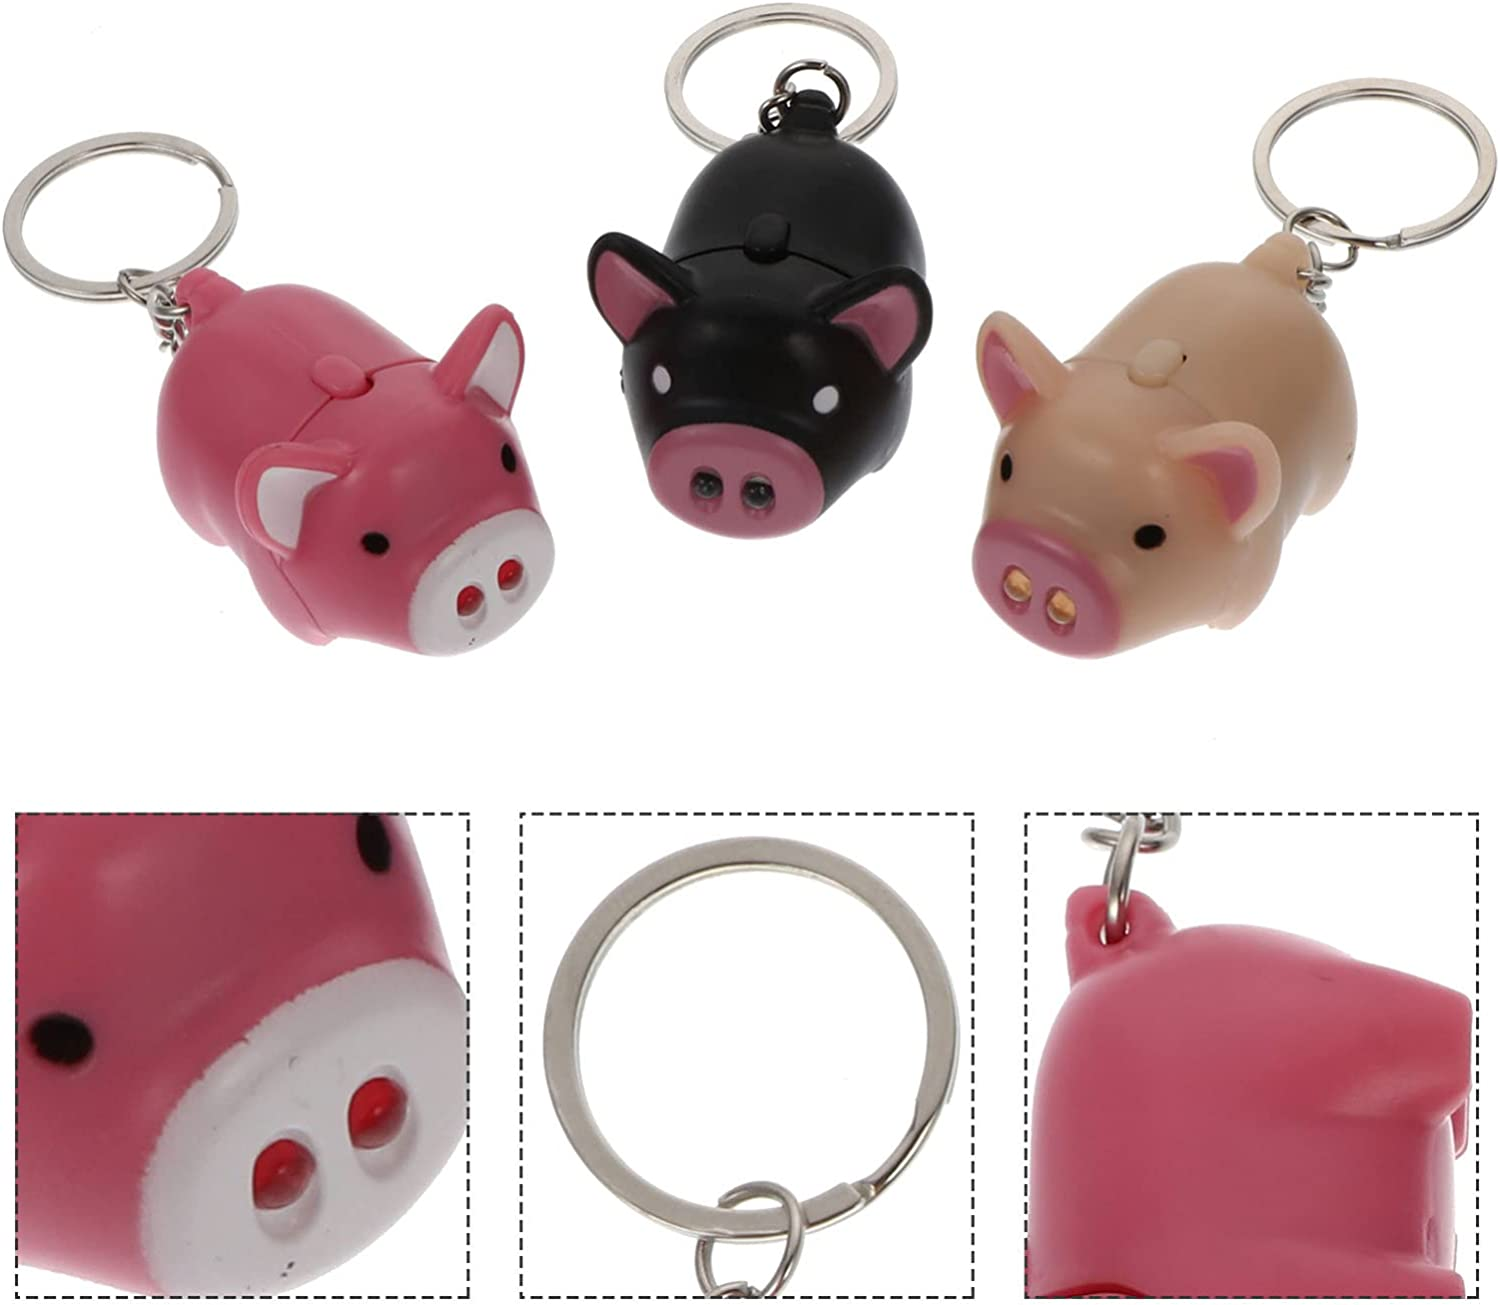 VOSAREA 3pcs Pig Keychain Animal Keychain Pig Keyring with LED Light Sound Squeaky Voice Toy for Gifts Cars Purses Handbag Decor (No Battery)